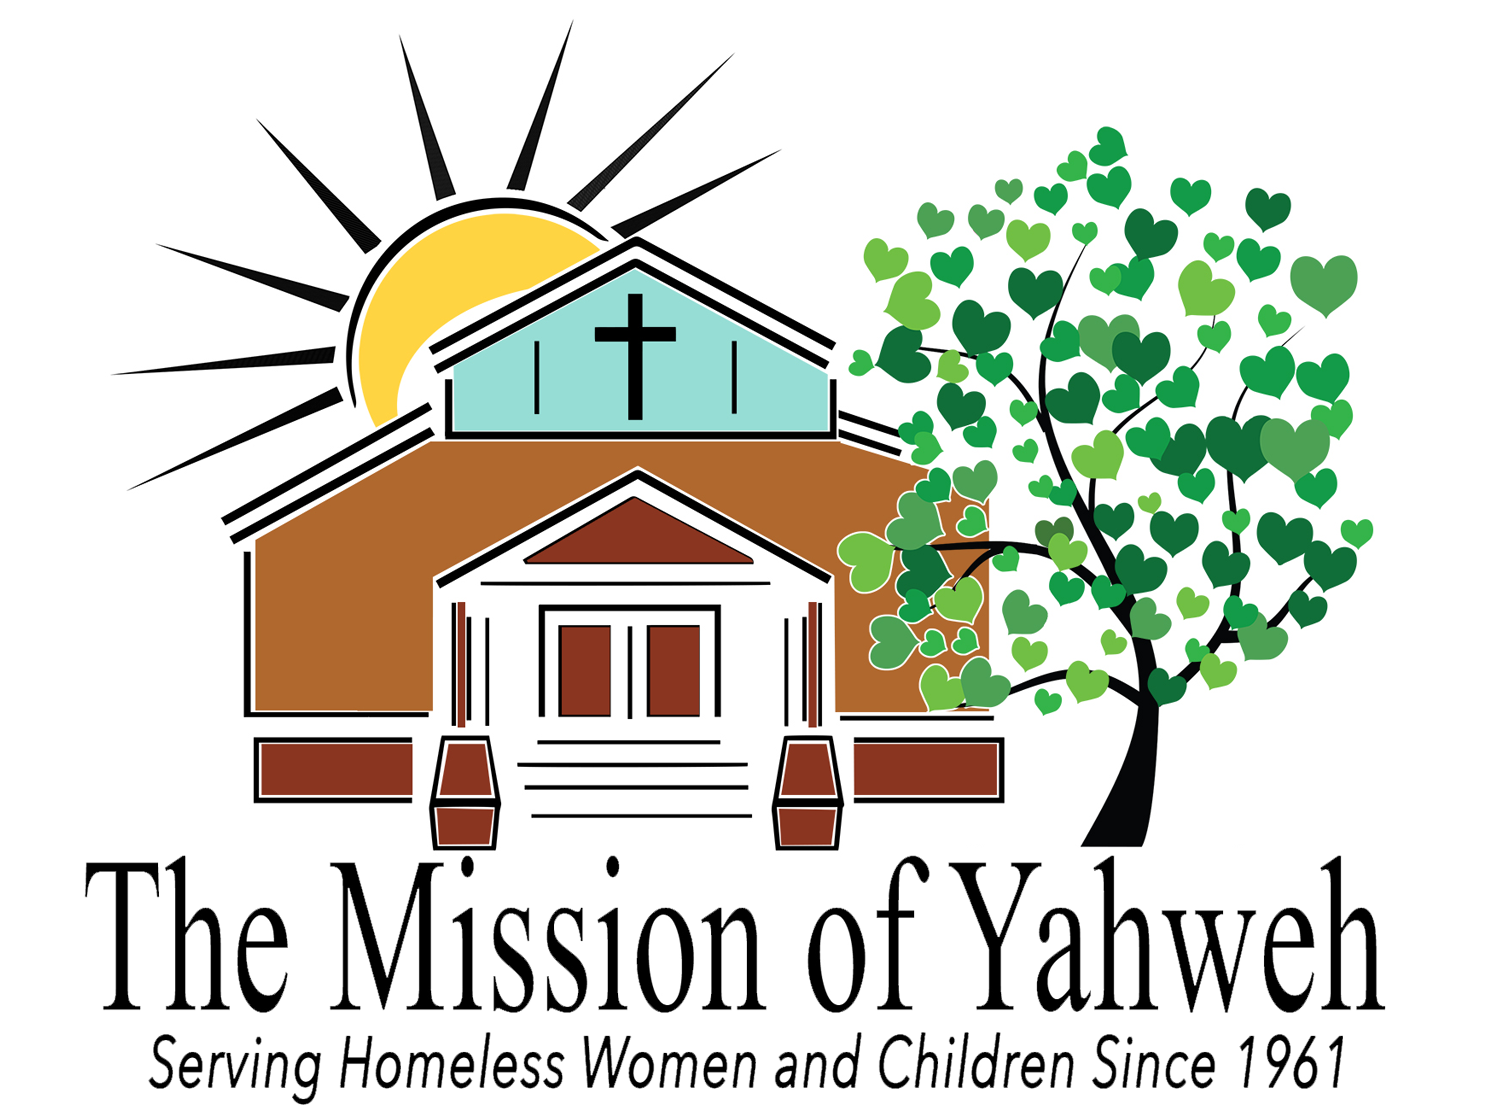 Supplies for Mission of Yahweh